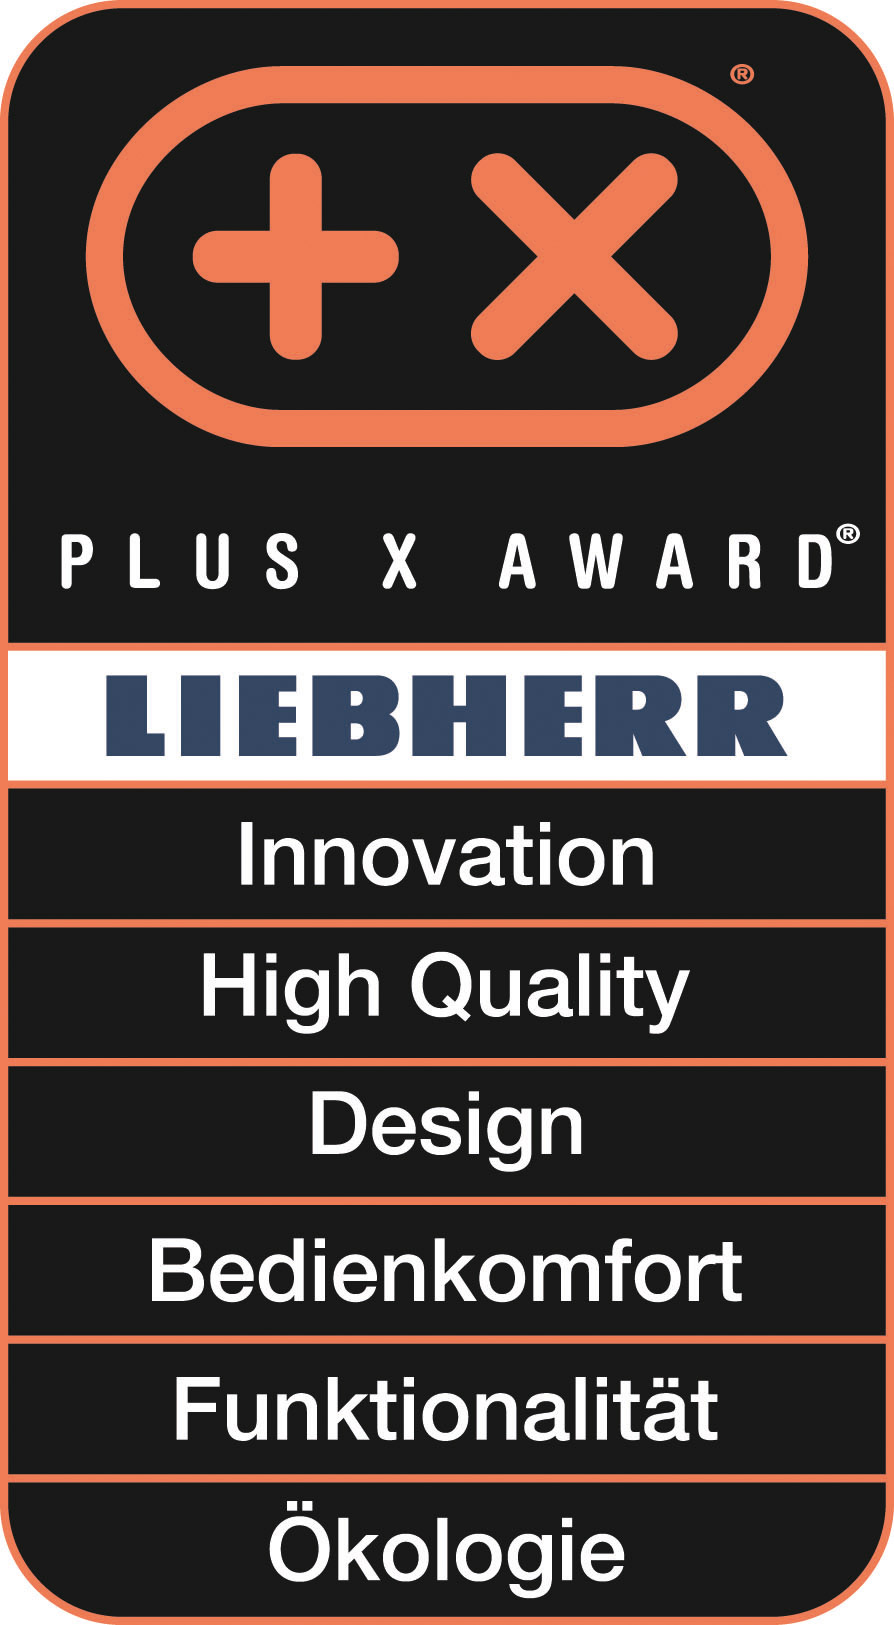 Plus X Award 2016 - Liebherr